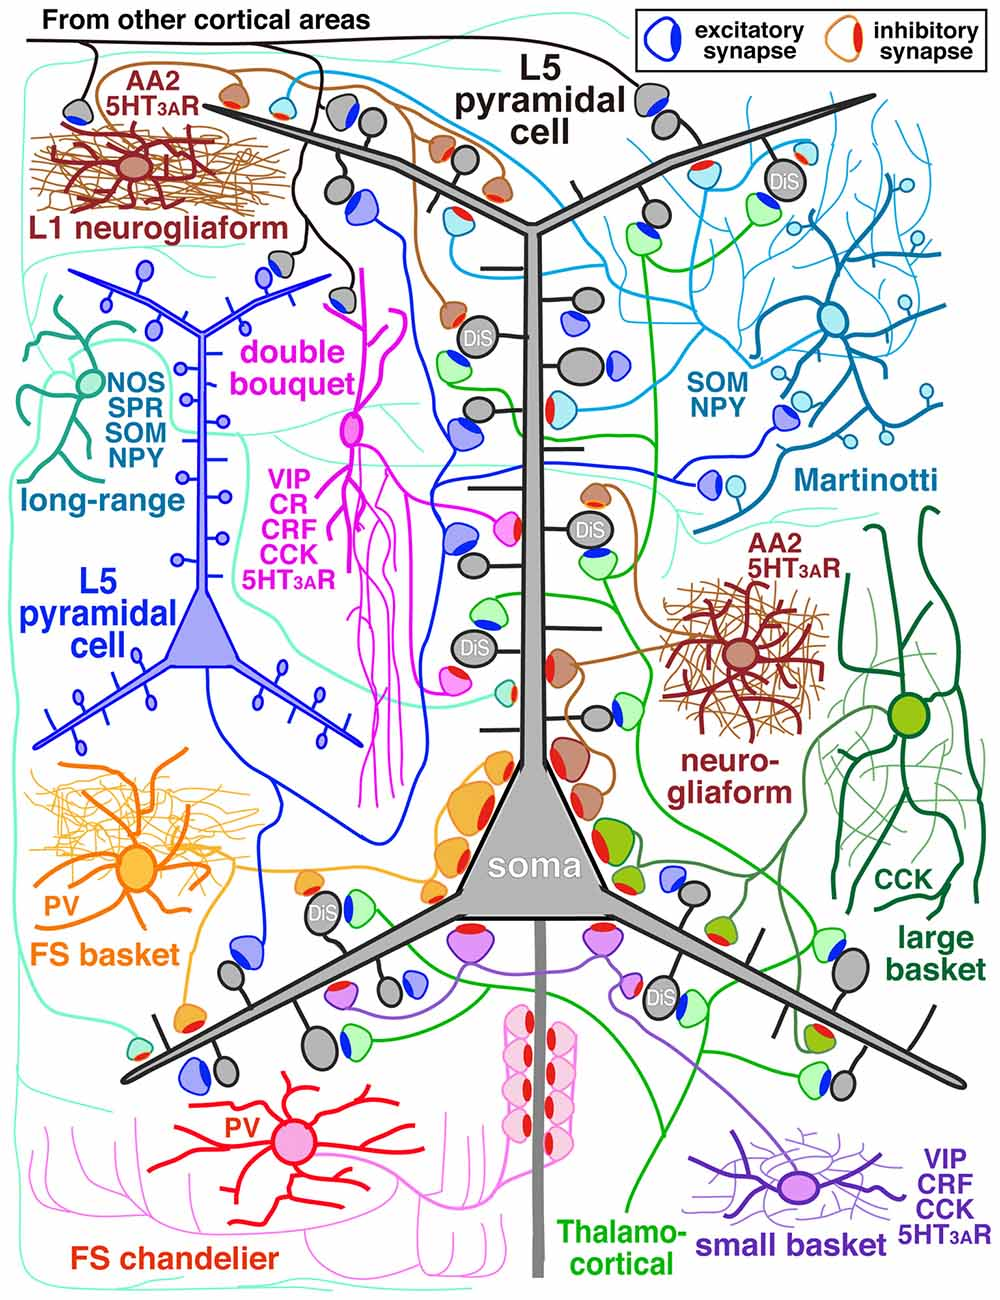 Frontiers | The Diversity of Cortical Inhibitory Synapses